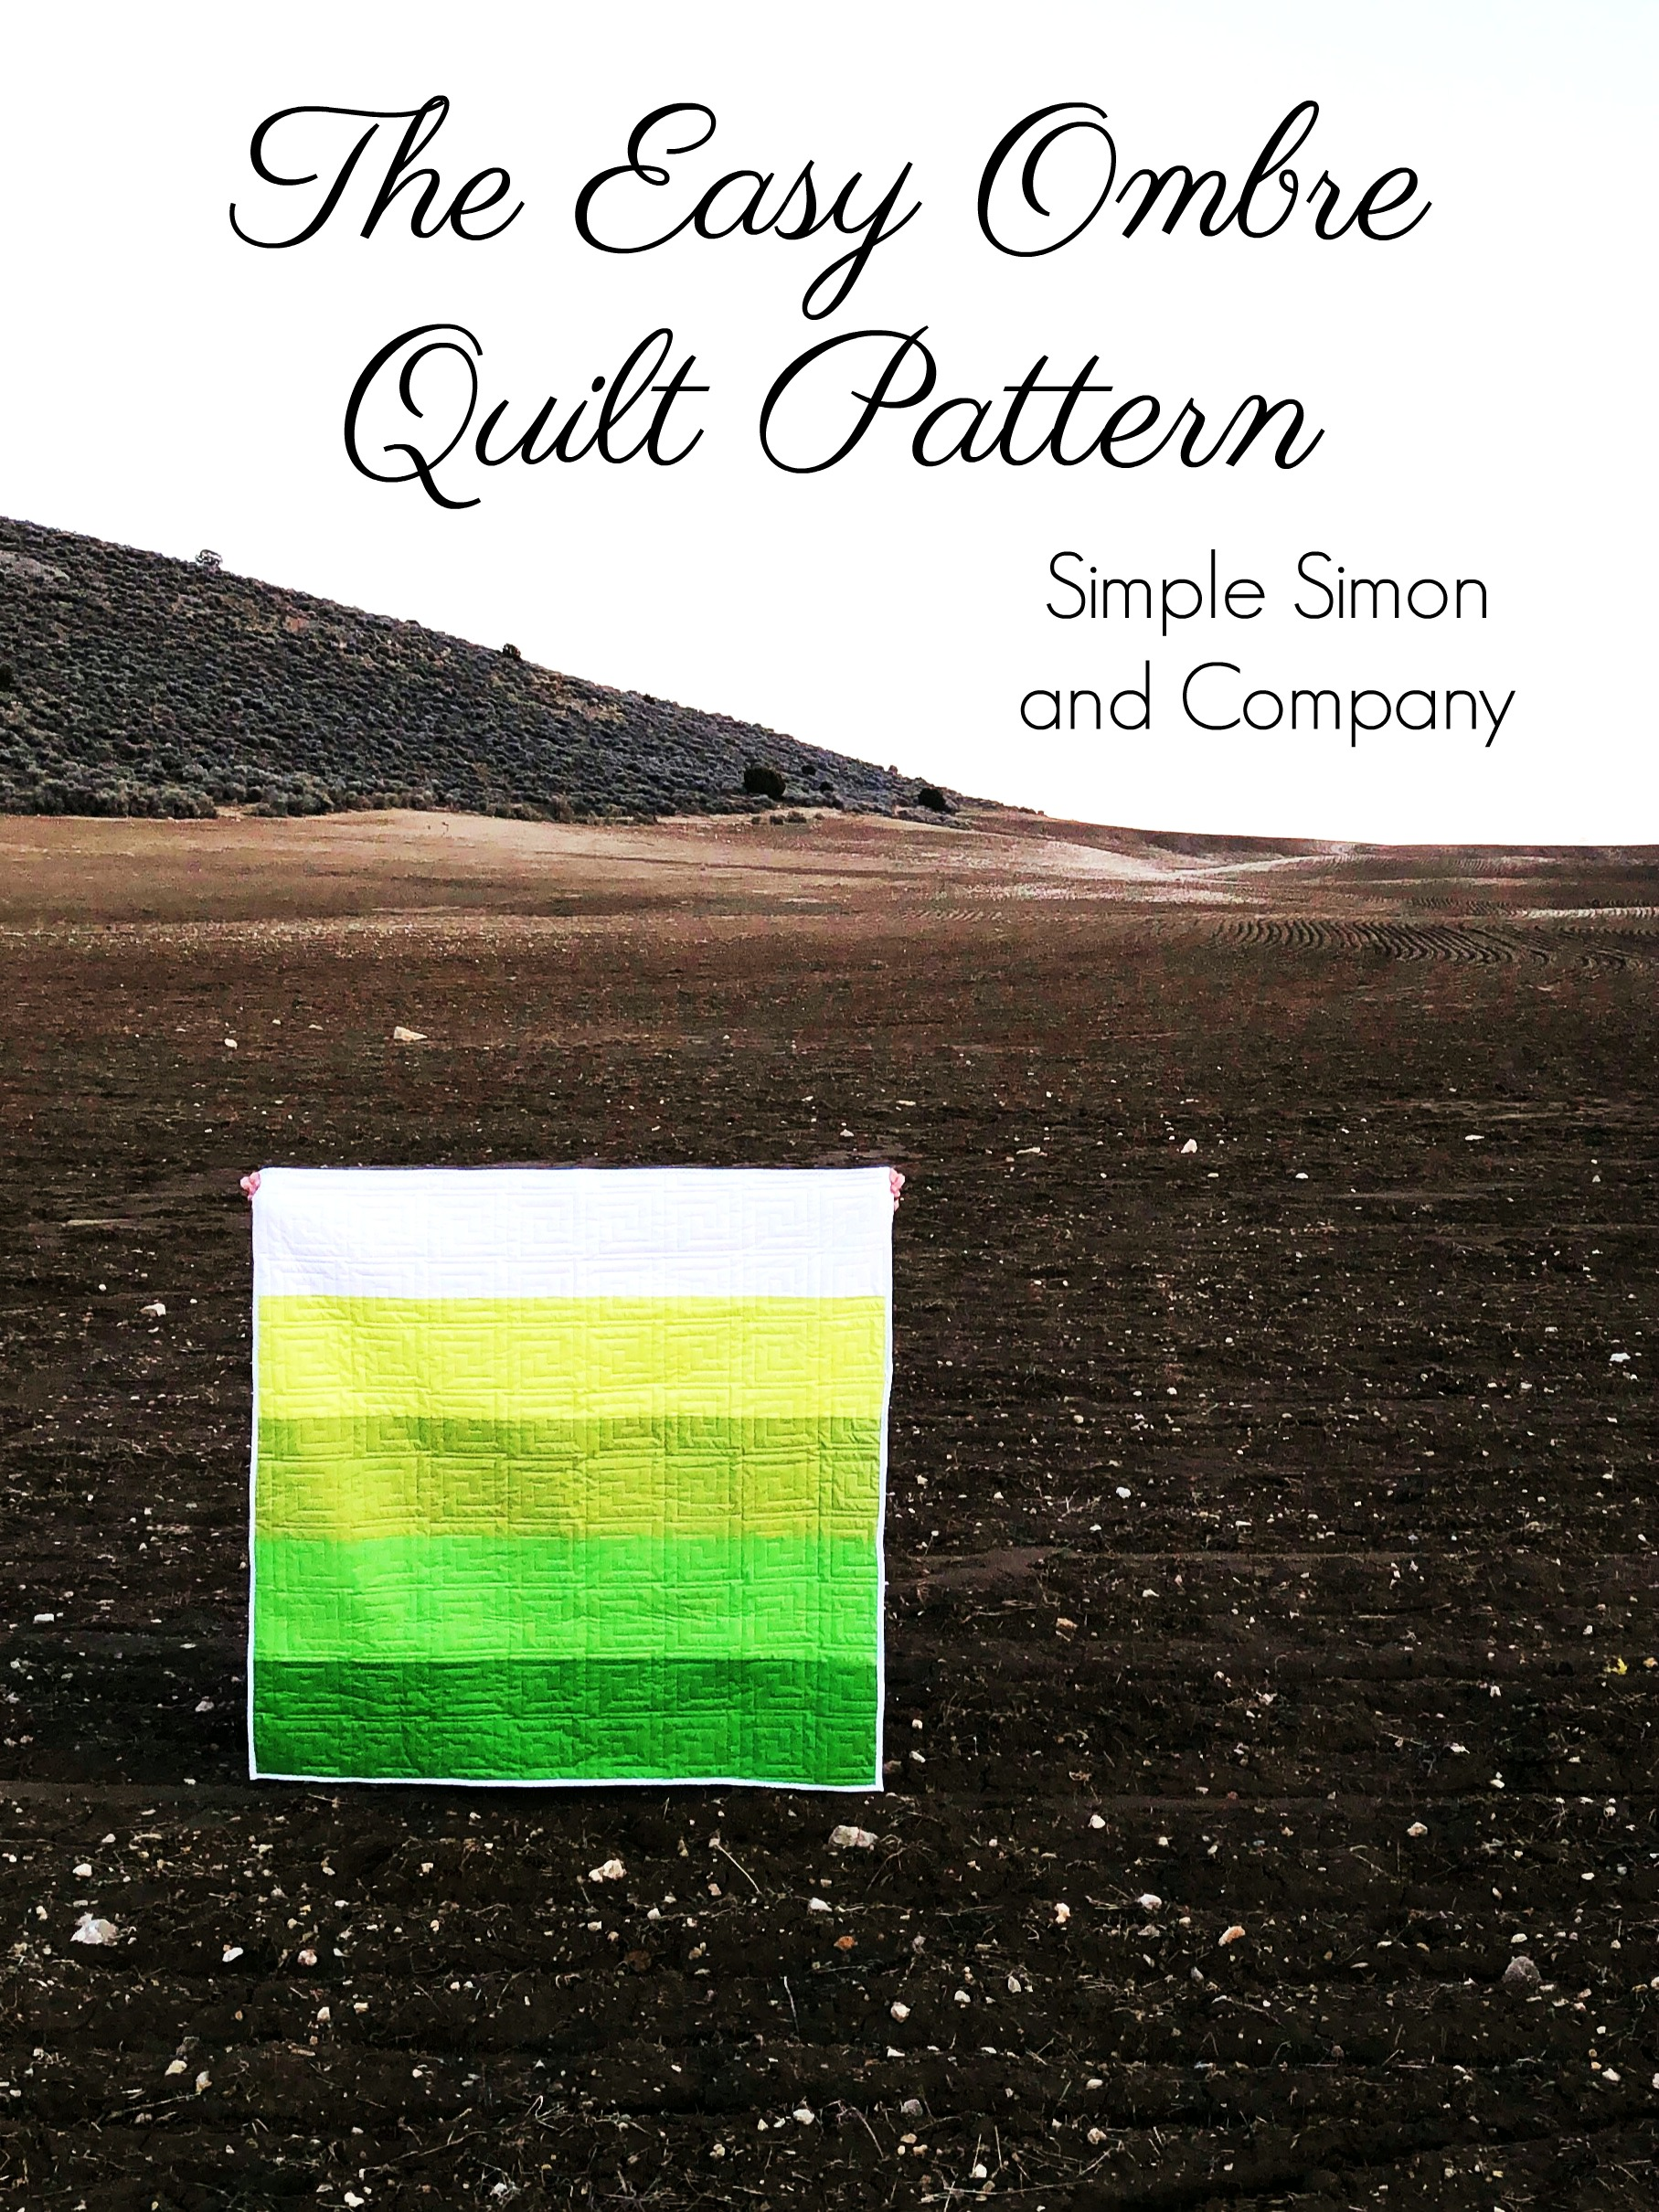 Easy Ombre Quilt Pattern